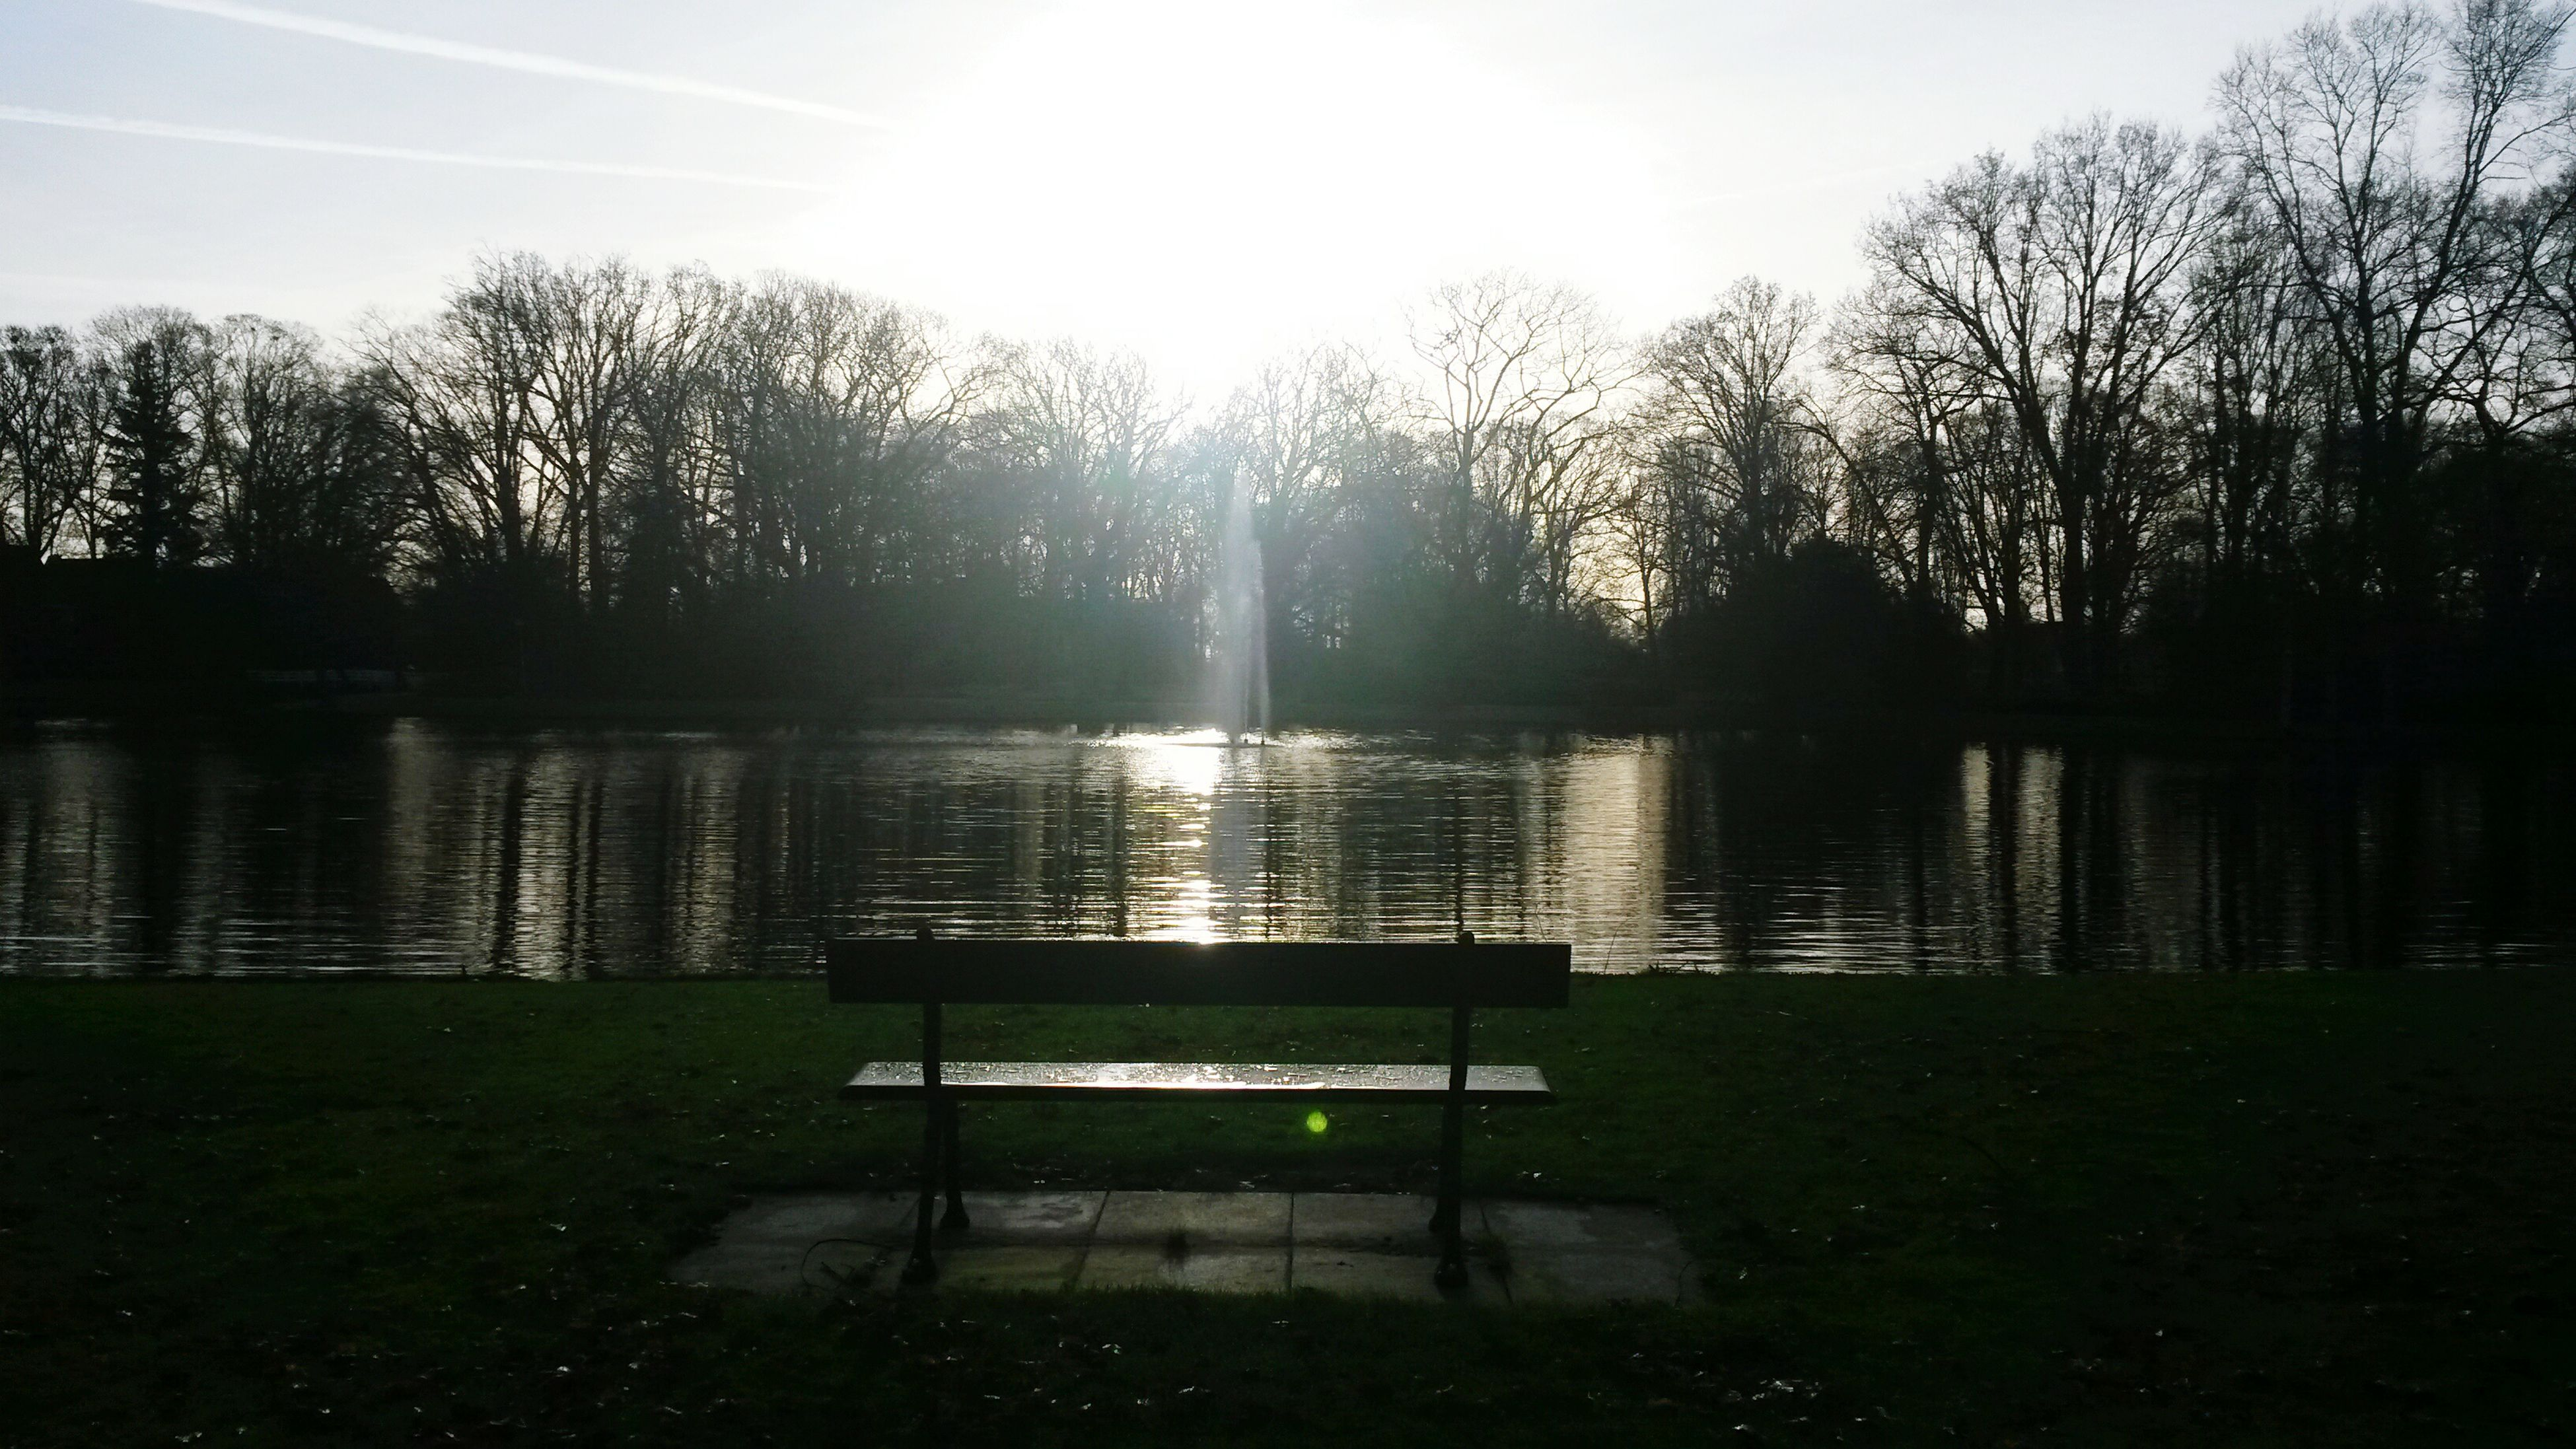 tree, water, tranquility, tranquil scene, bench, lake, scenics, beauty in nature, nature, sunlight, grass, sun, sky, empty, absence, park bench, idyllic, park - man made space, growth, reflection